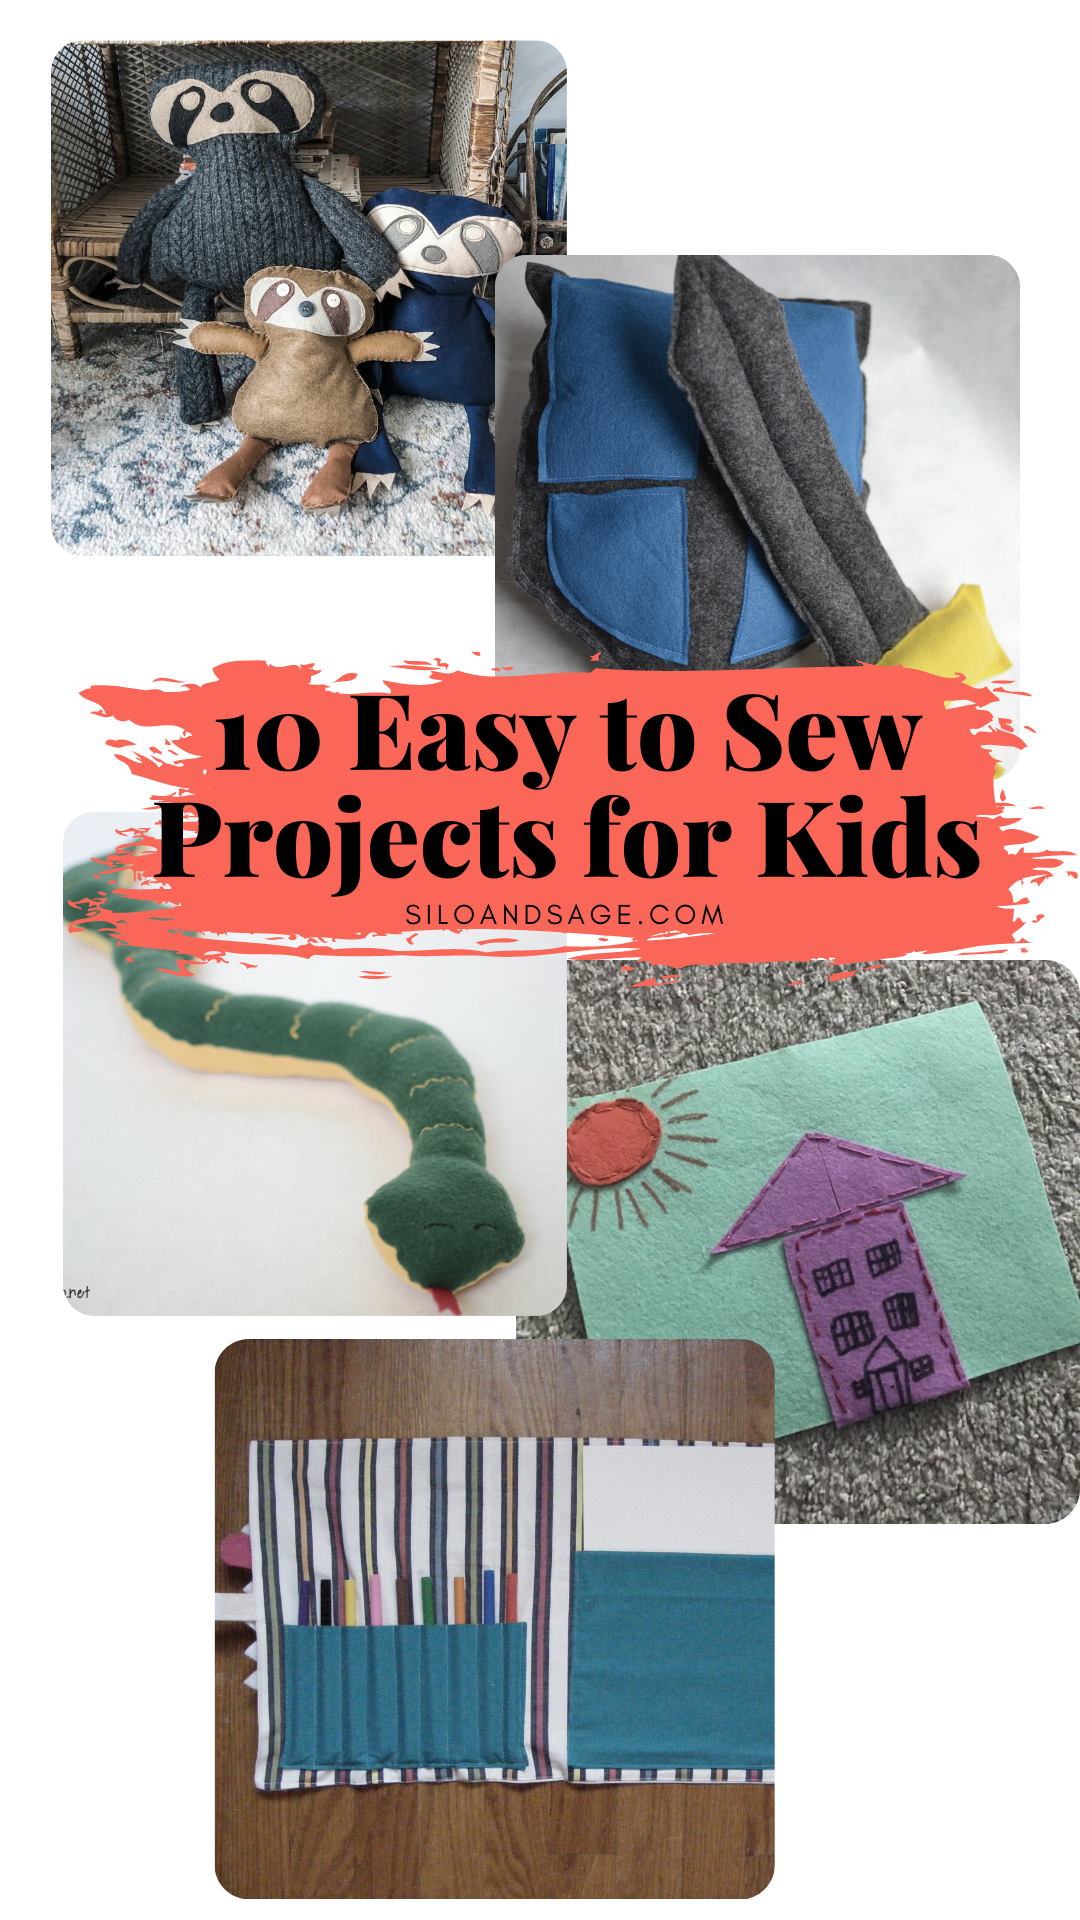 Ten Easy to Sew Projects for Kids